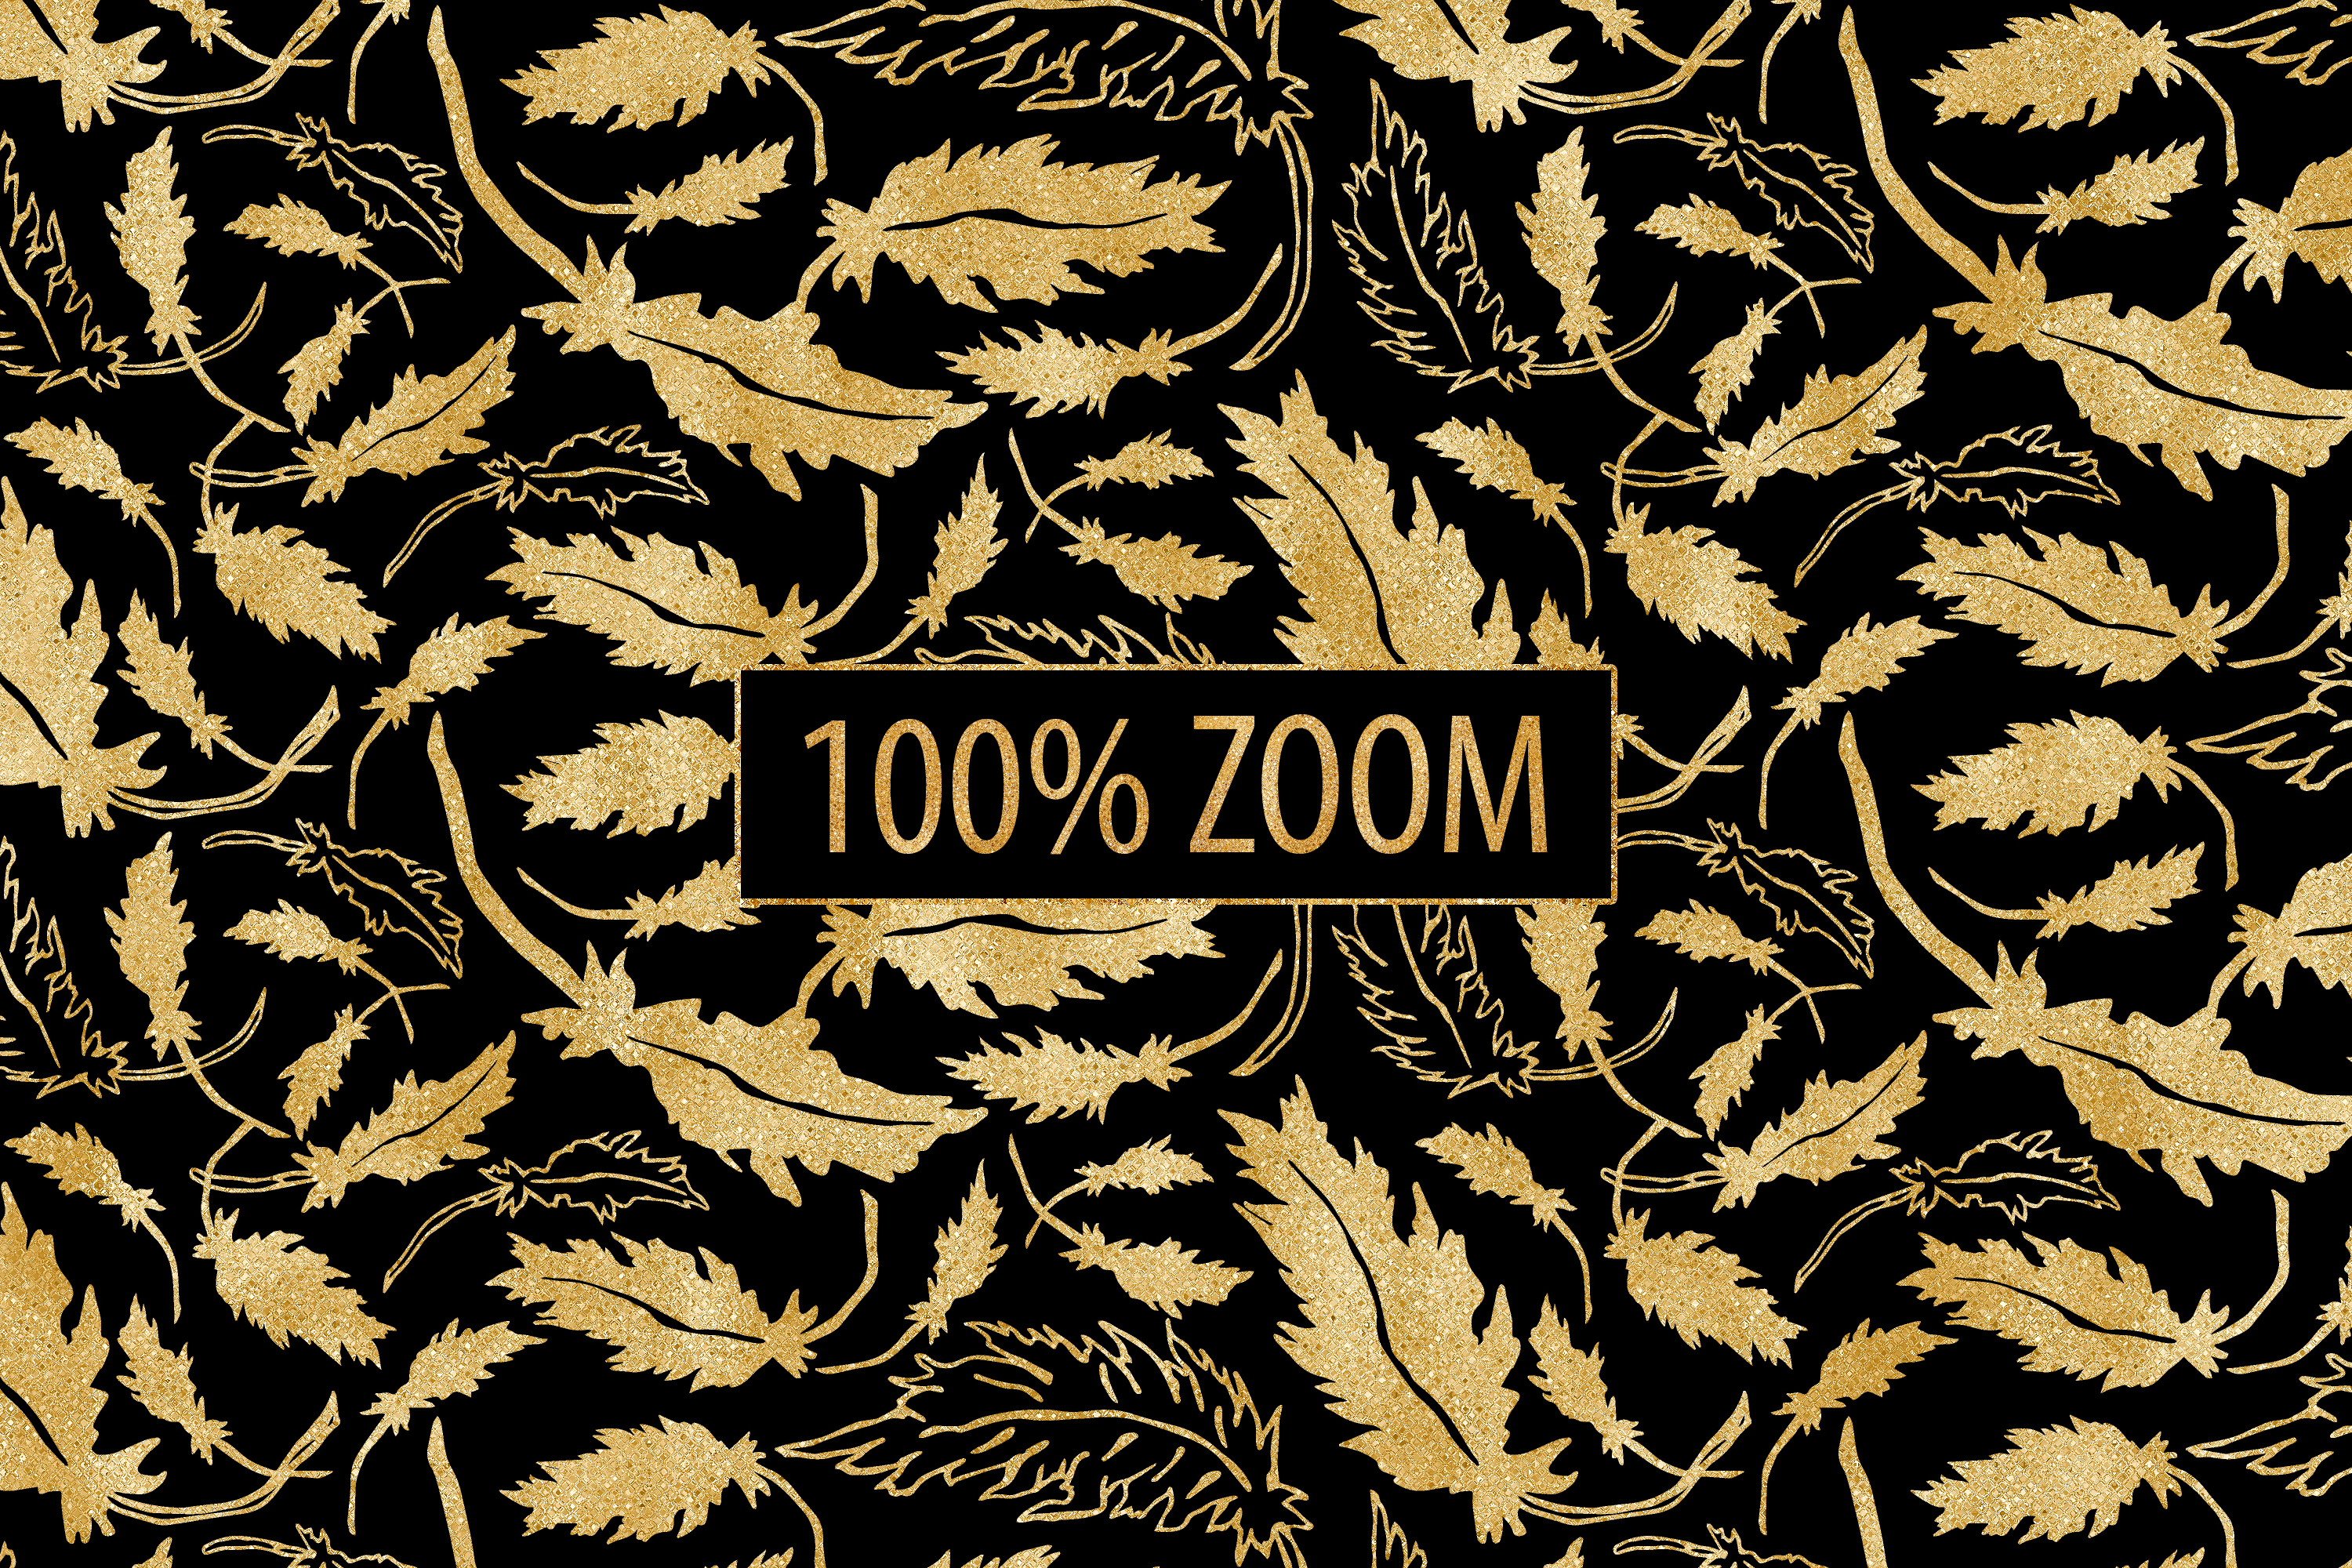 Black and Gold Seamless Papers - Damask & Geometric Patterns example image 9